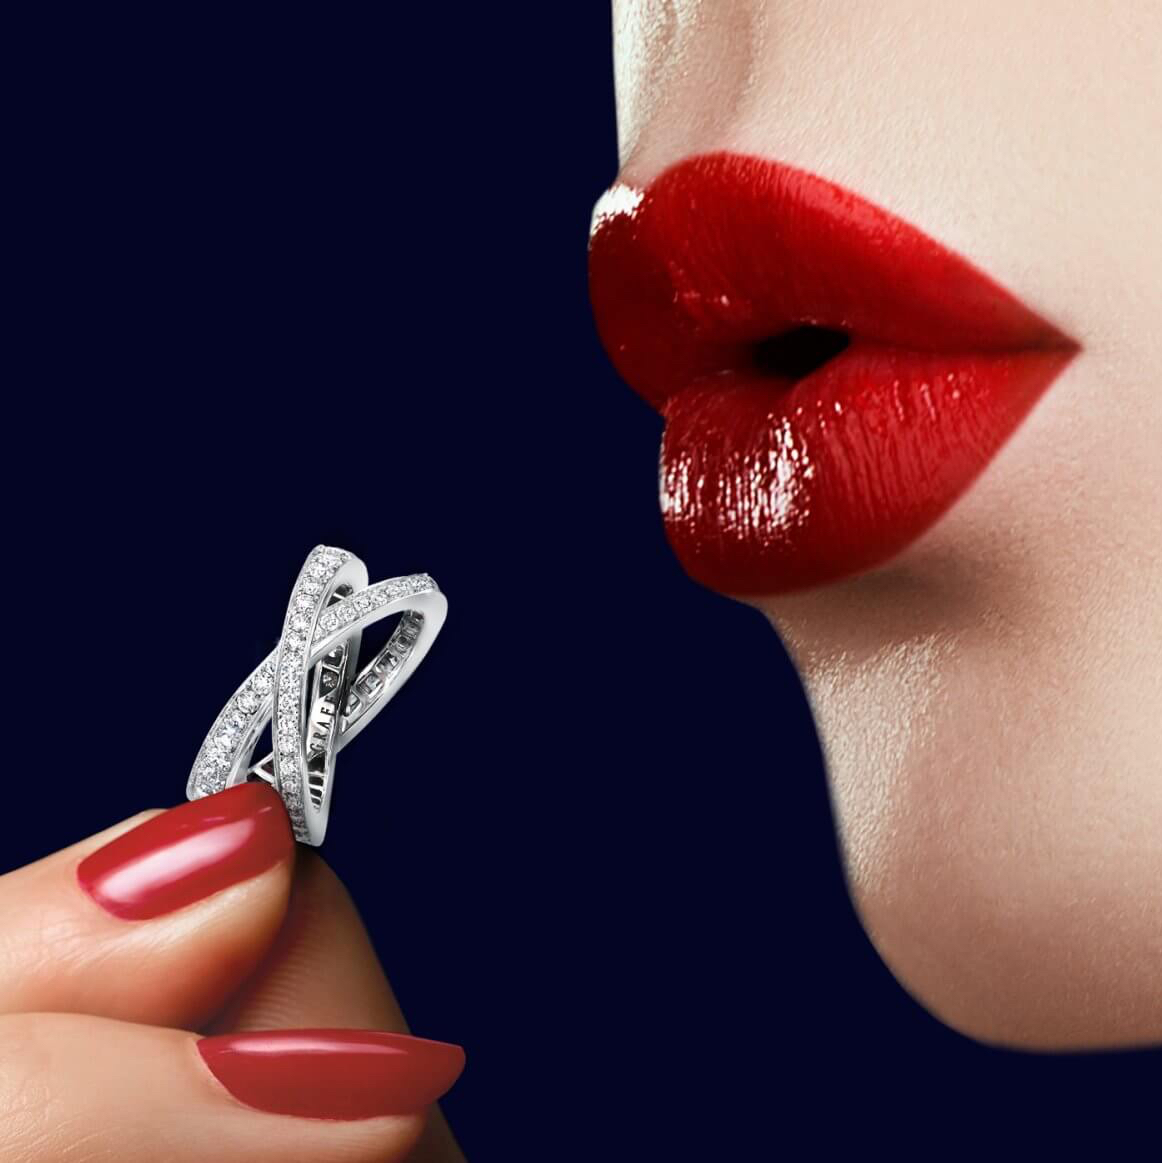 Model holding Kiss Pavé Diamond Ring from the Graff jewellery collection